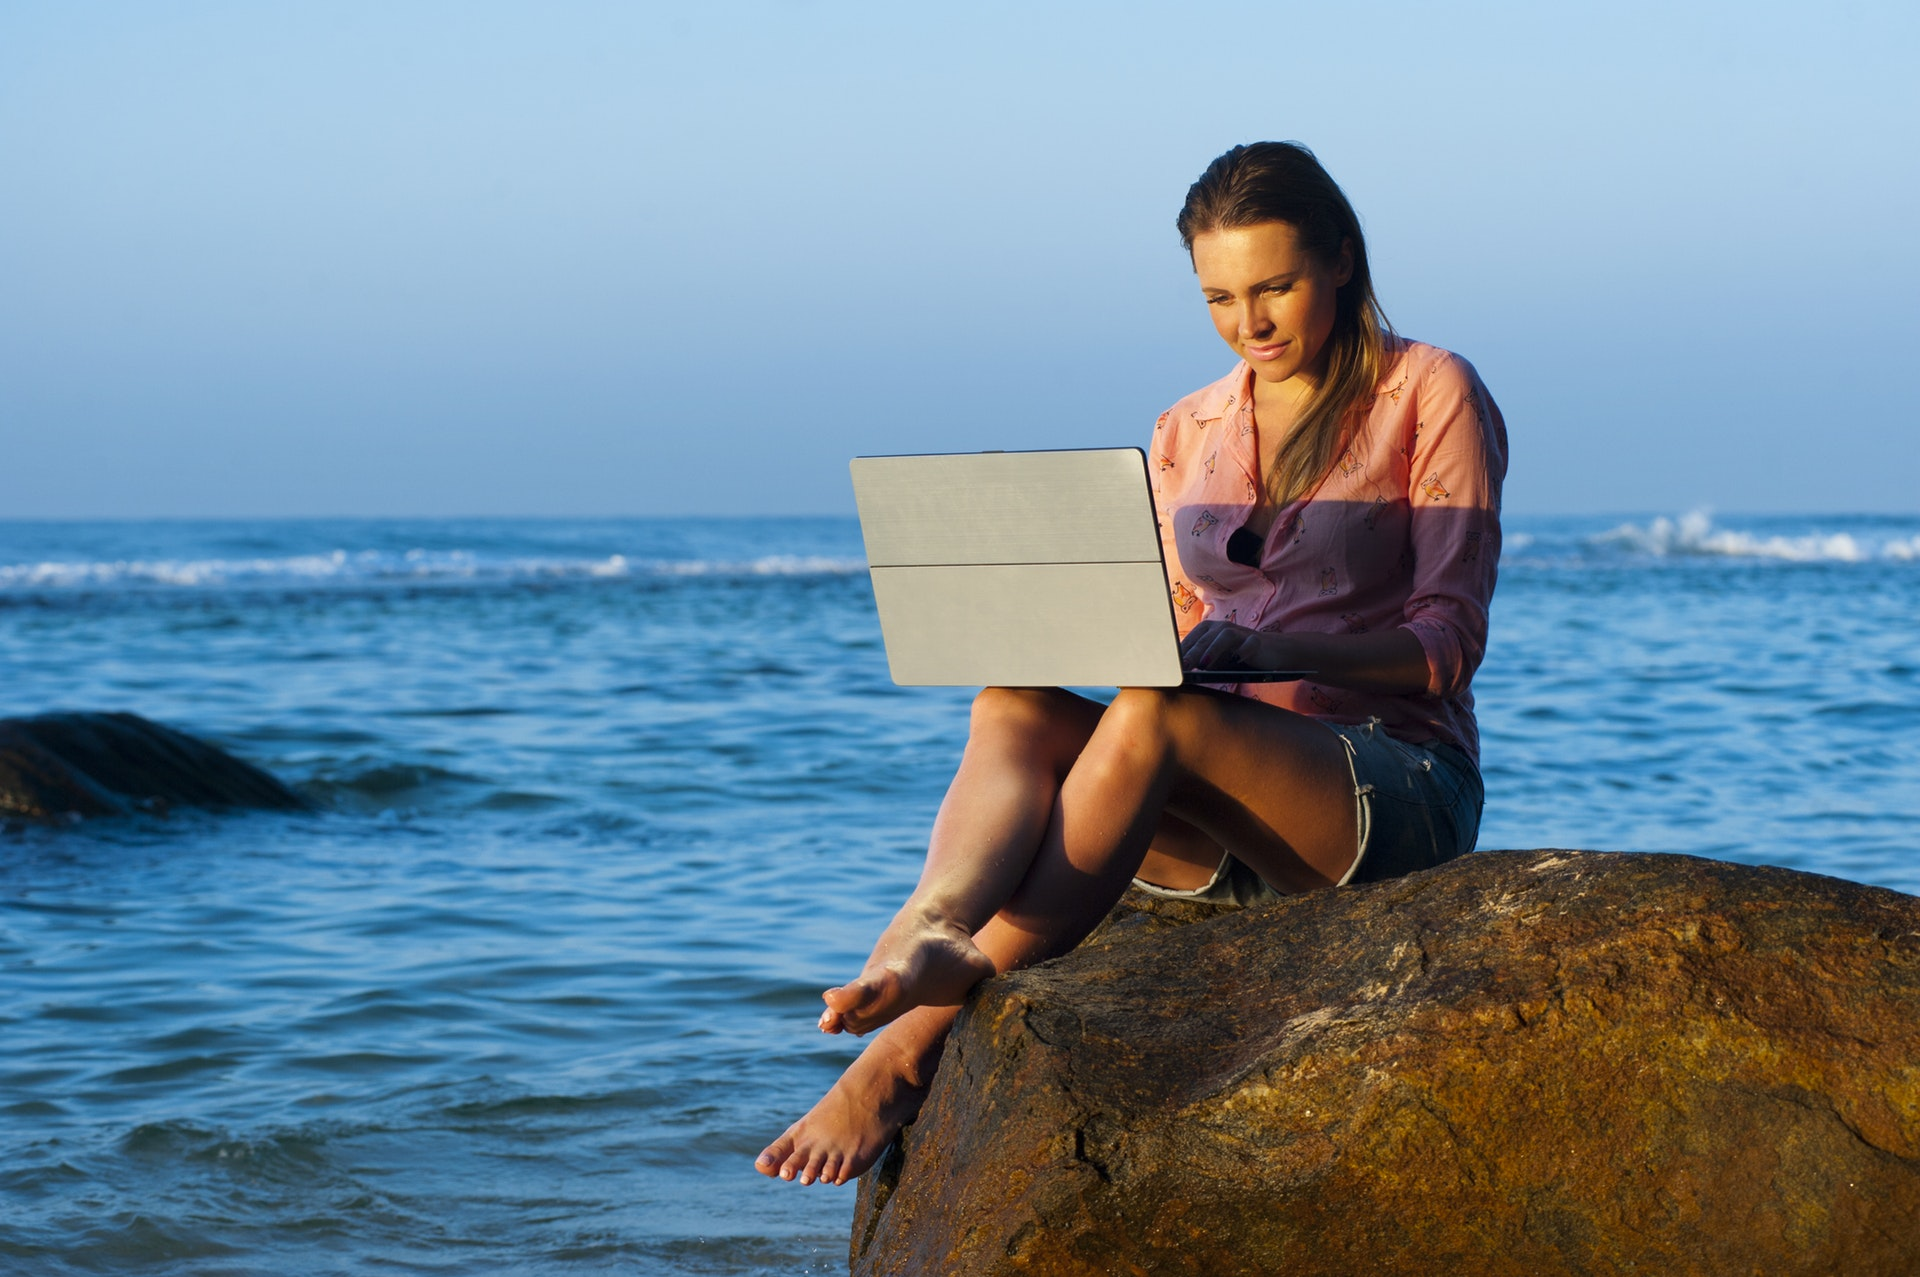 Tips for Working Remotely While Traveling the World